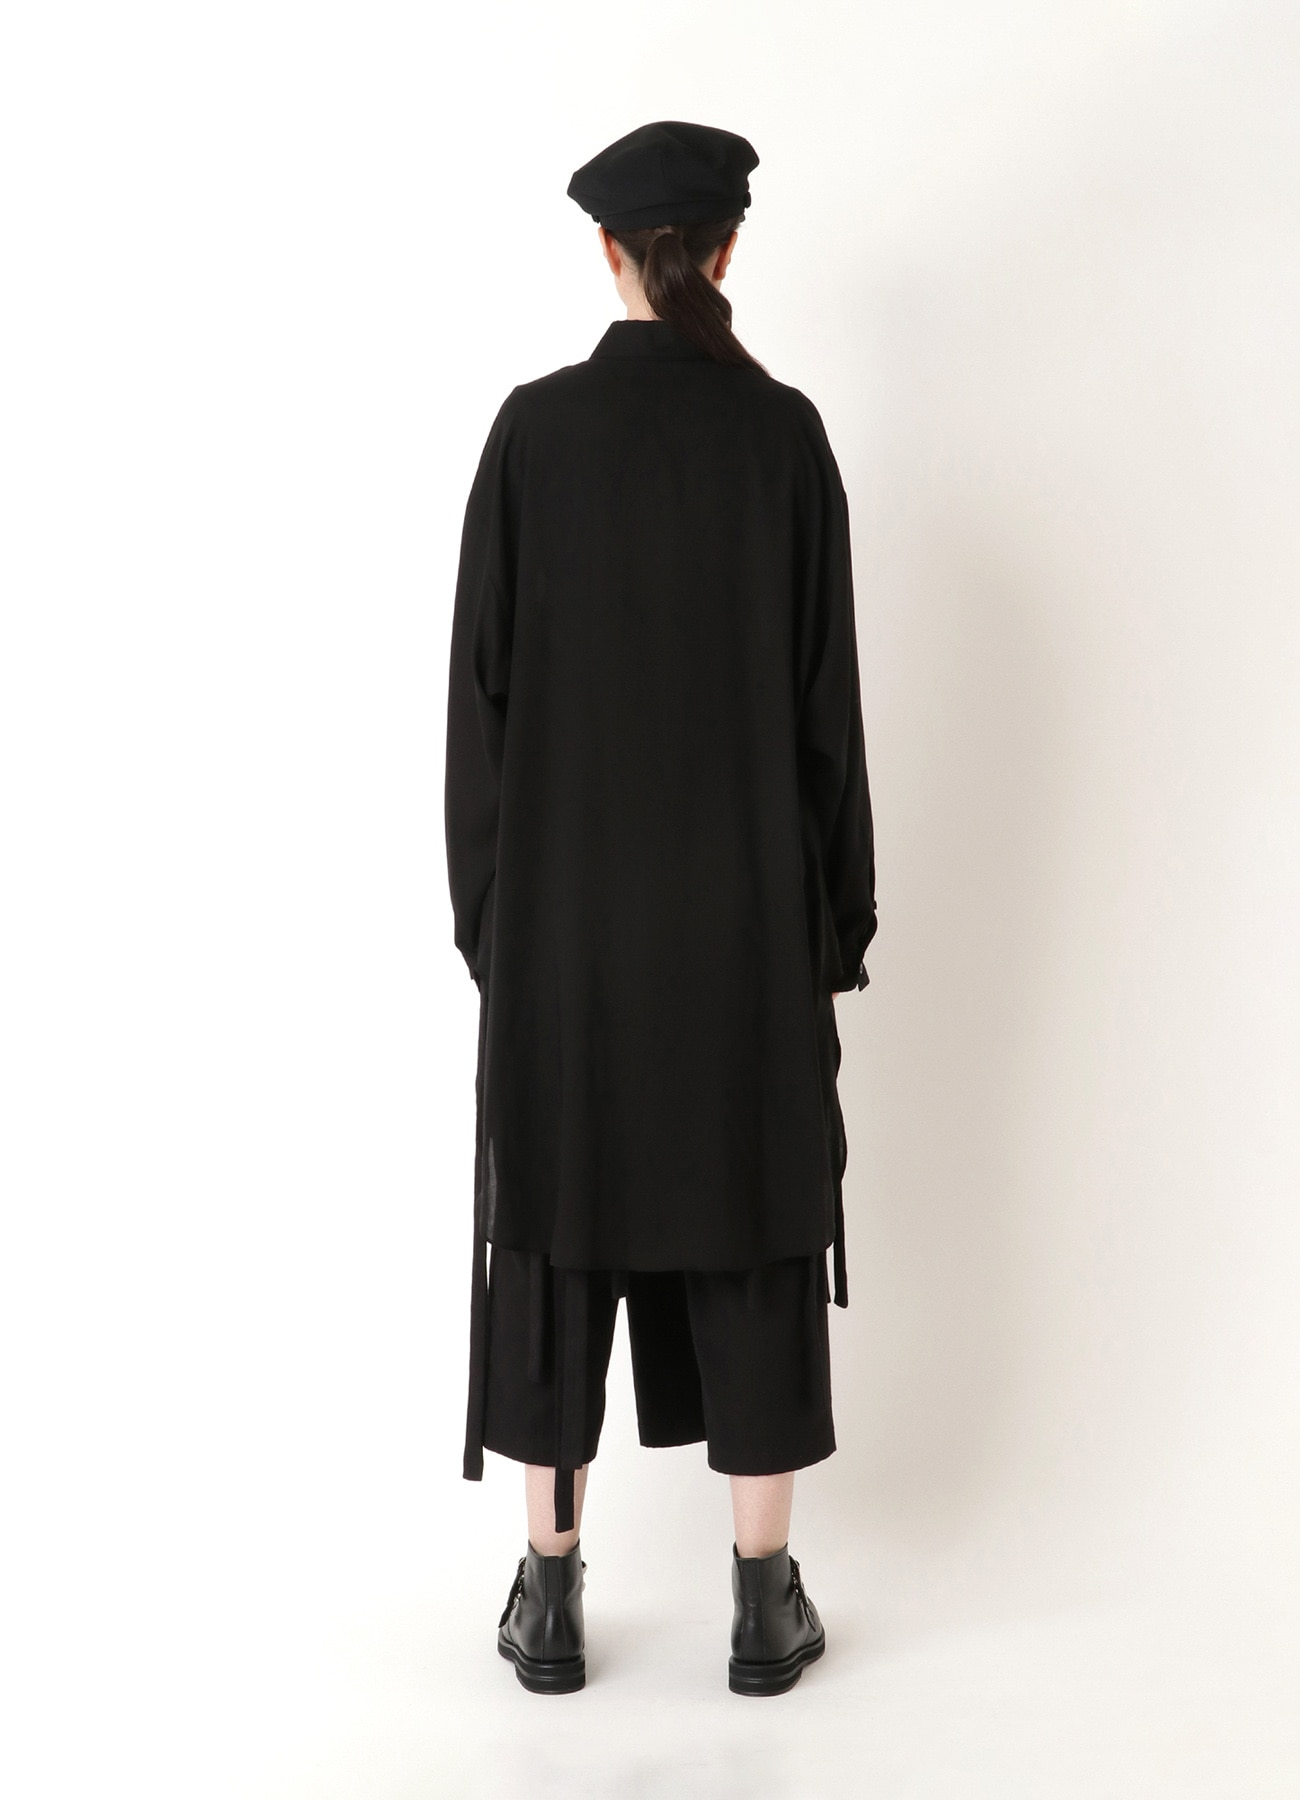 TEN/LAWN B/ROUND HEM LONG SLEEVE